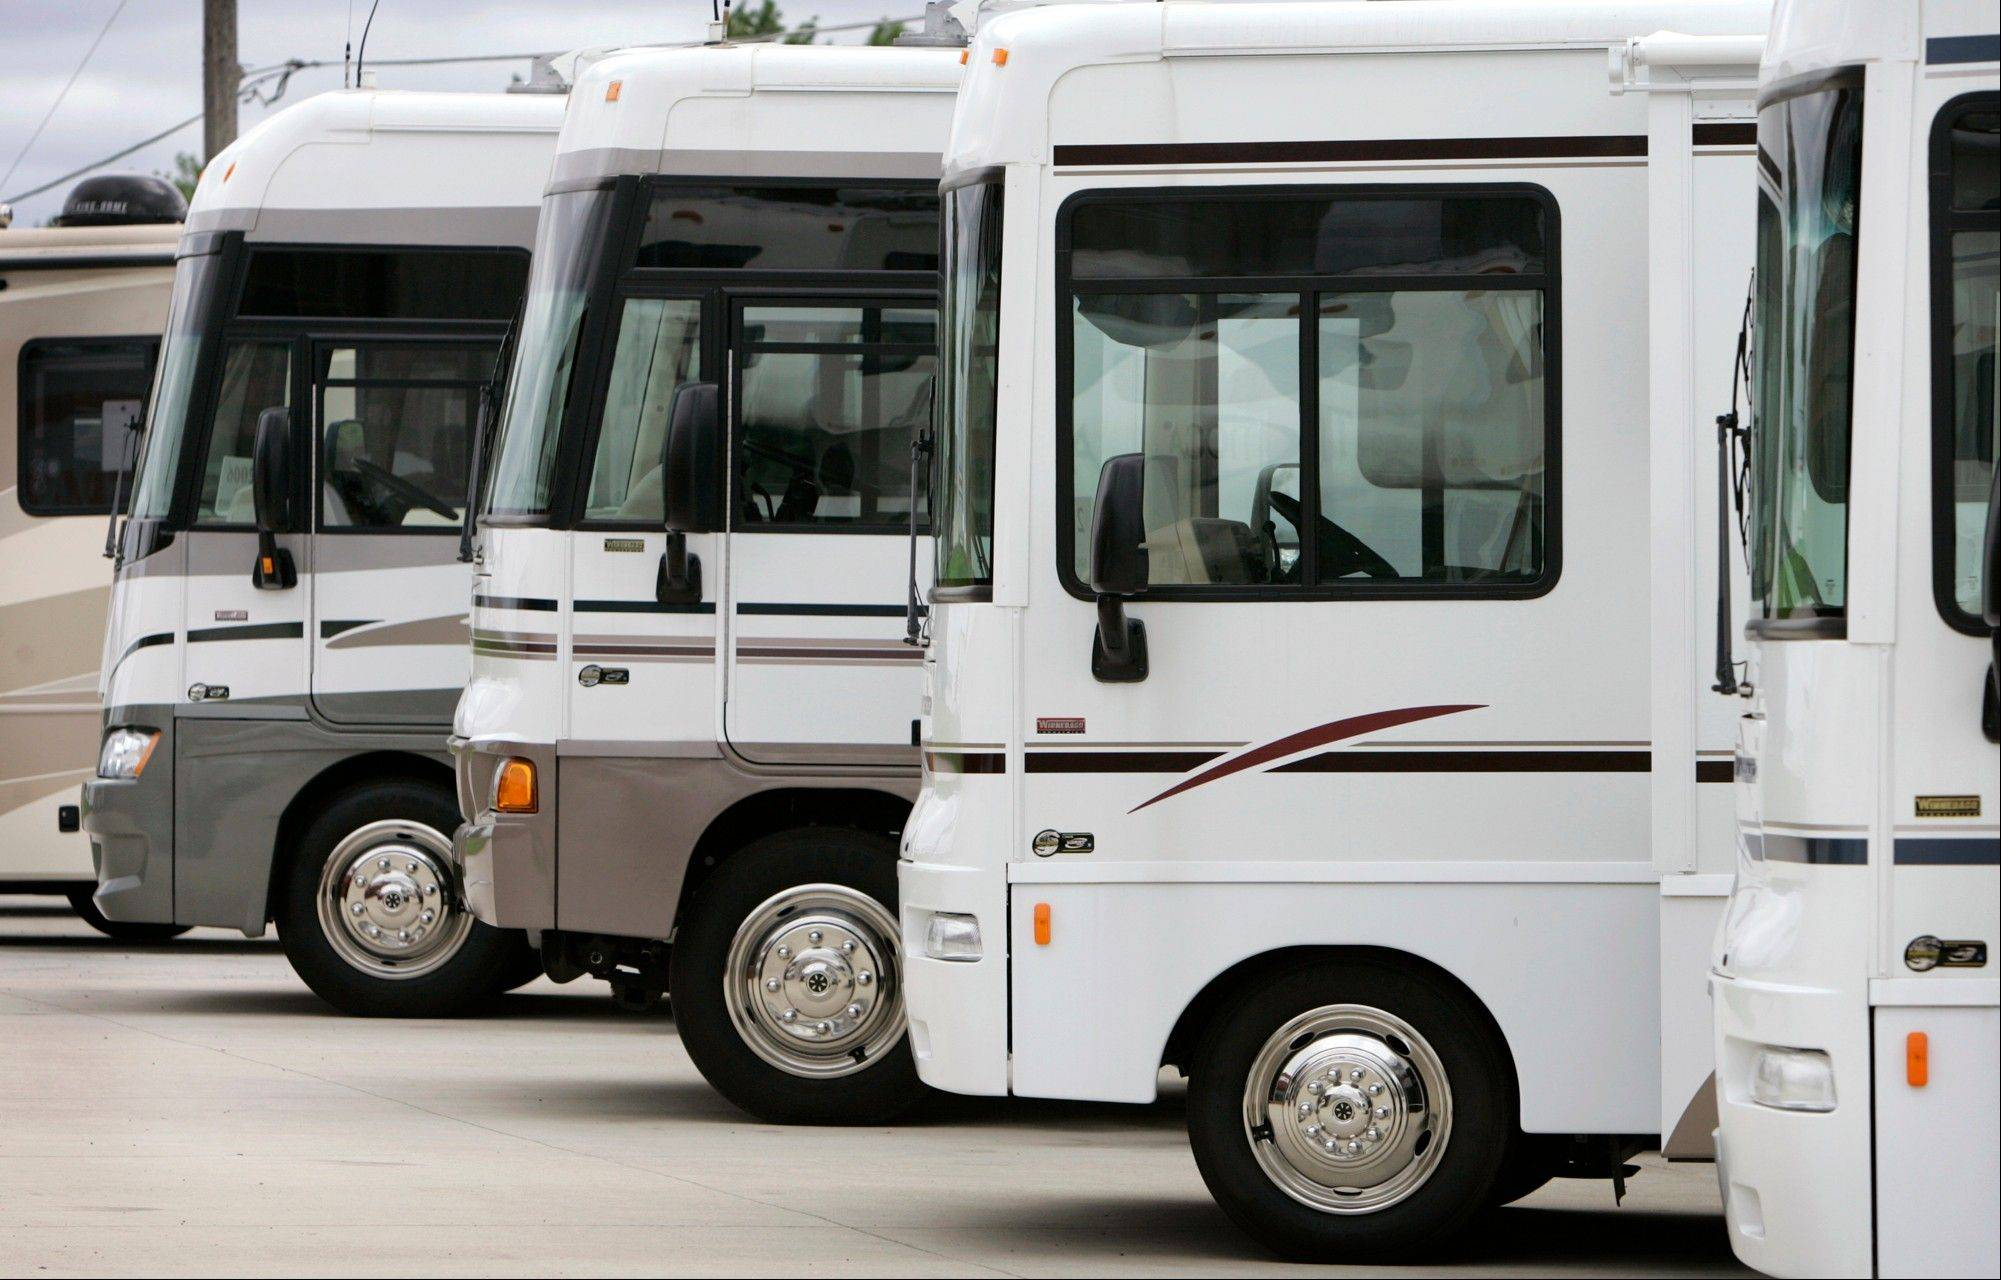 Winnebago motor homes are shown on a lot, in Jefferson, Iowa. Led by sales growth for towable RVs and pricier stand-alone motor homes, recreational vehicle makers expect to ship more than 300,000 units to dealers in 2013 for the first time since the economic downturn.